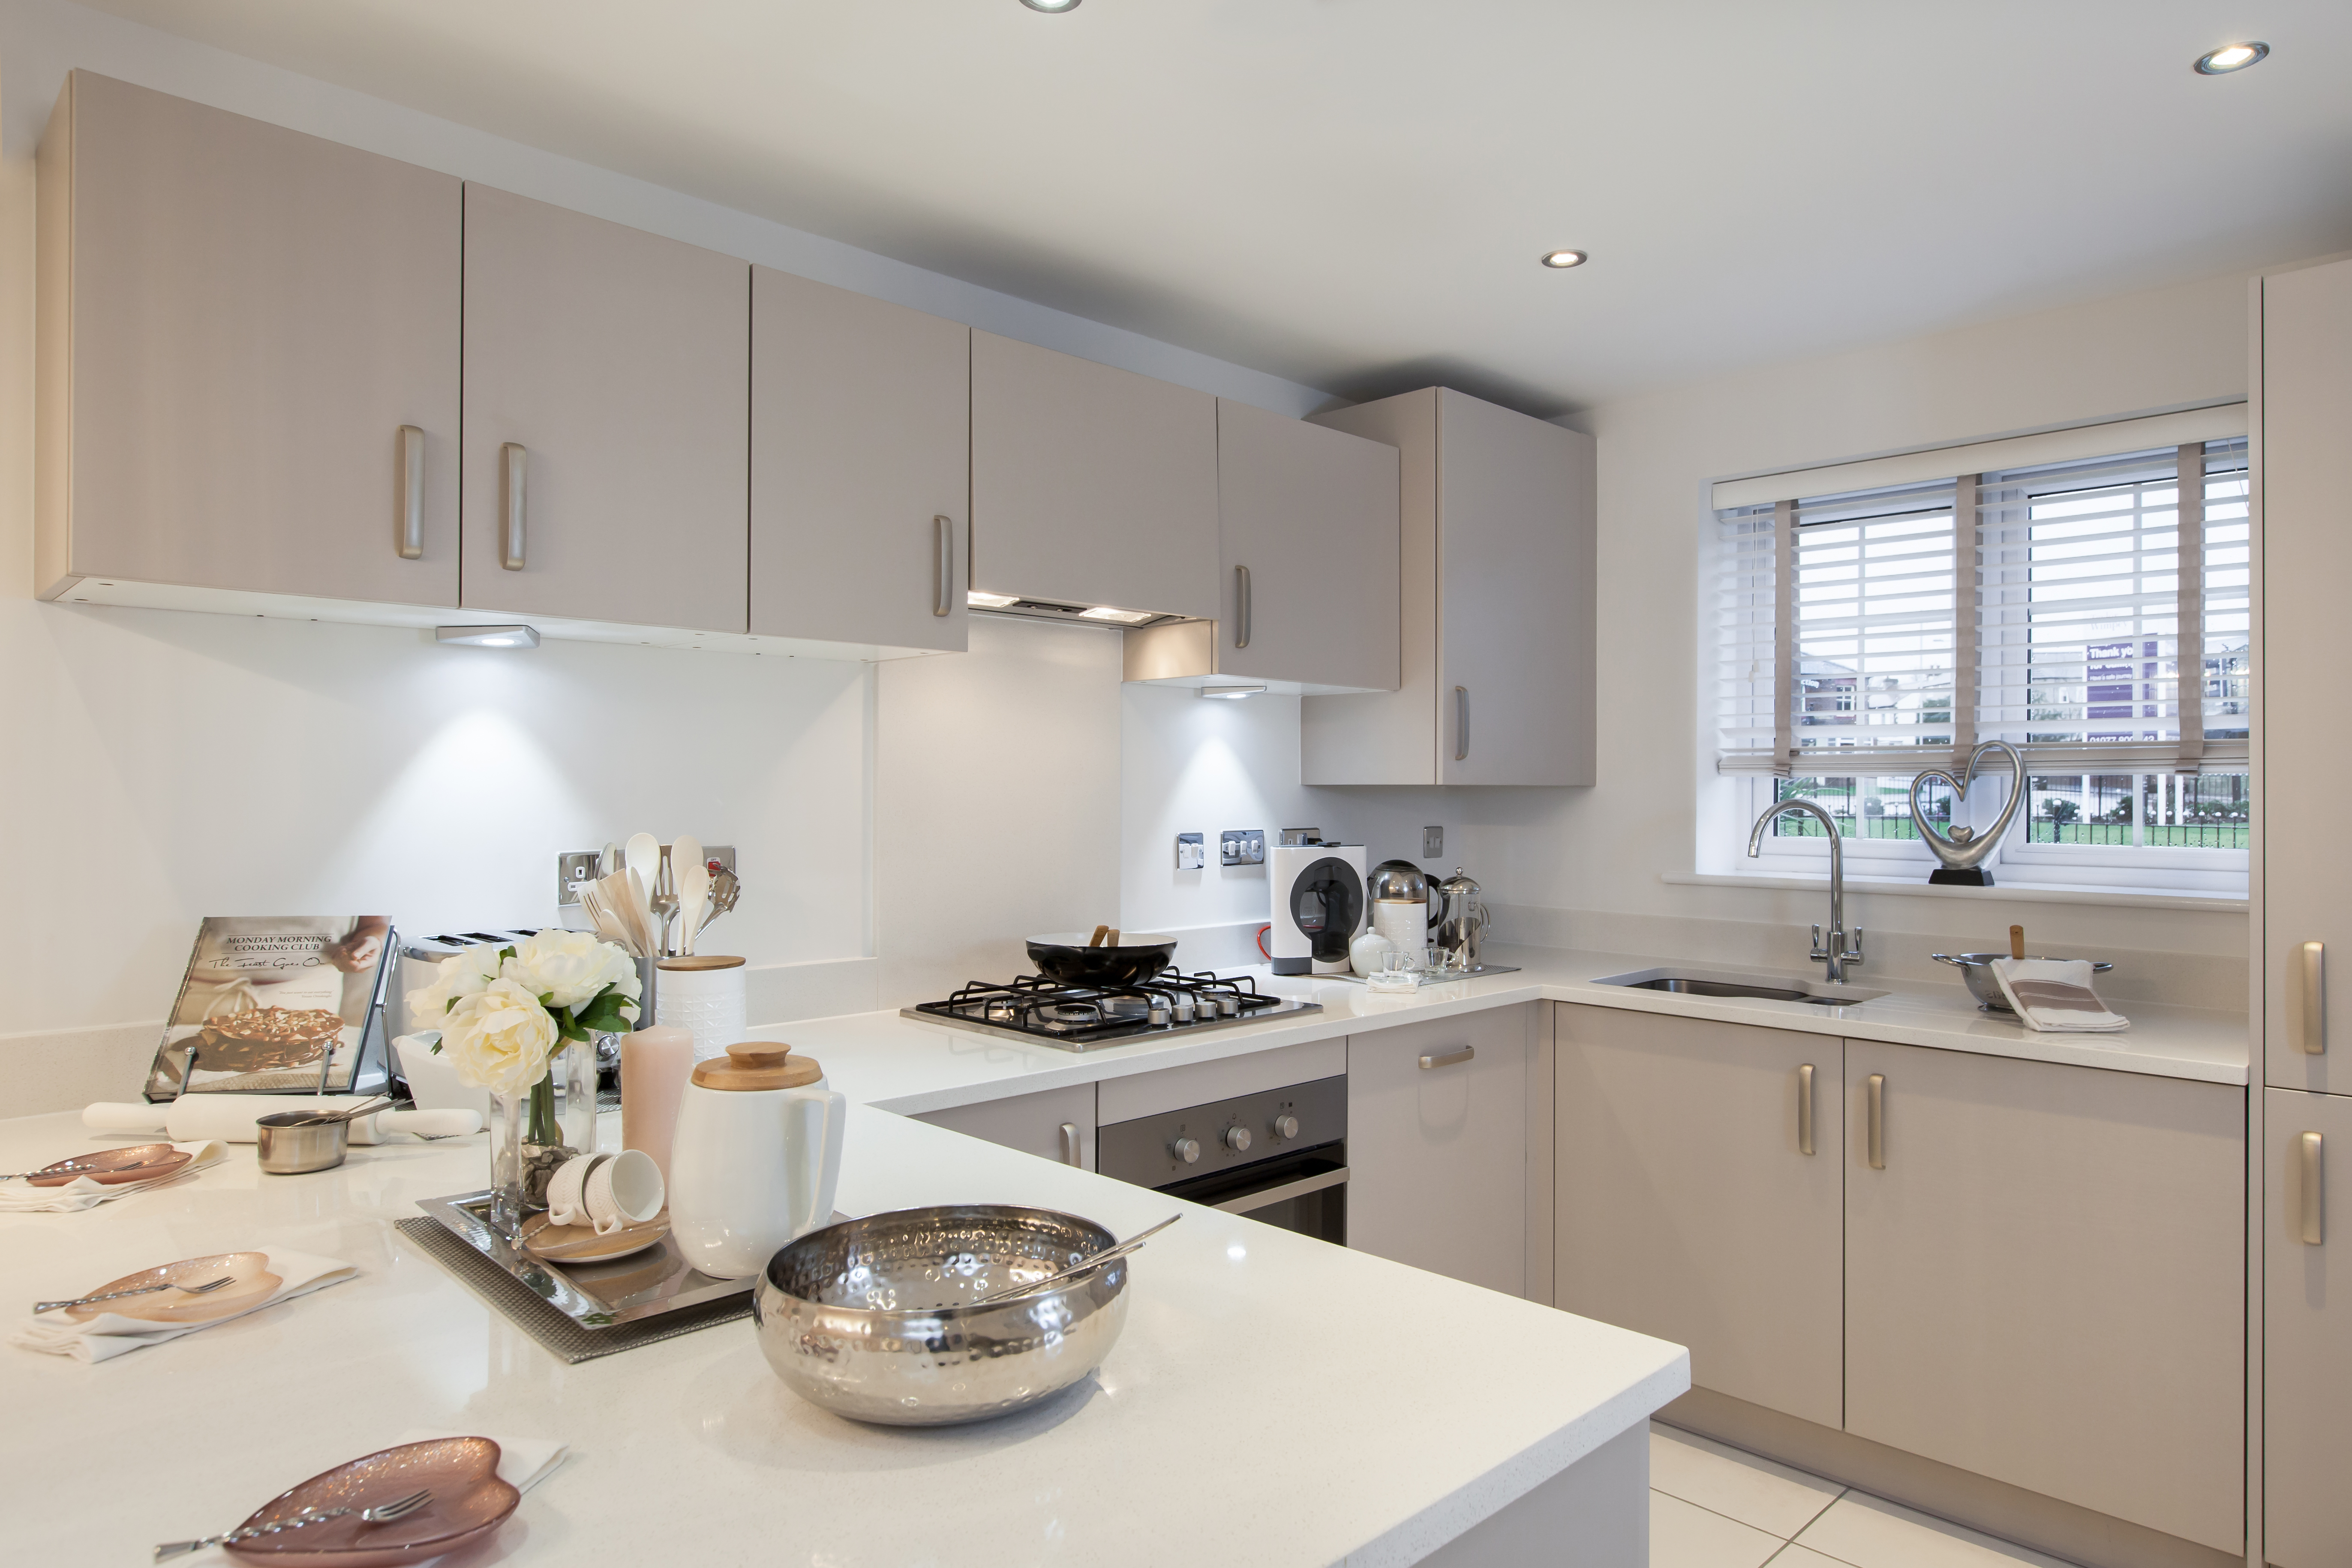 TW YO_Colliers Court_PB35_Alton_Kitchen 3